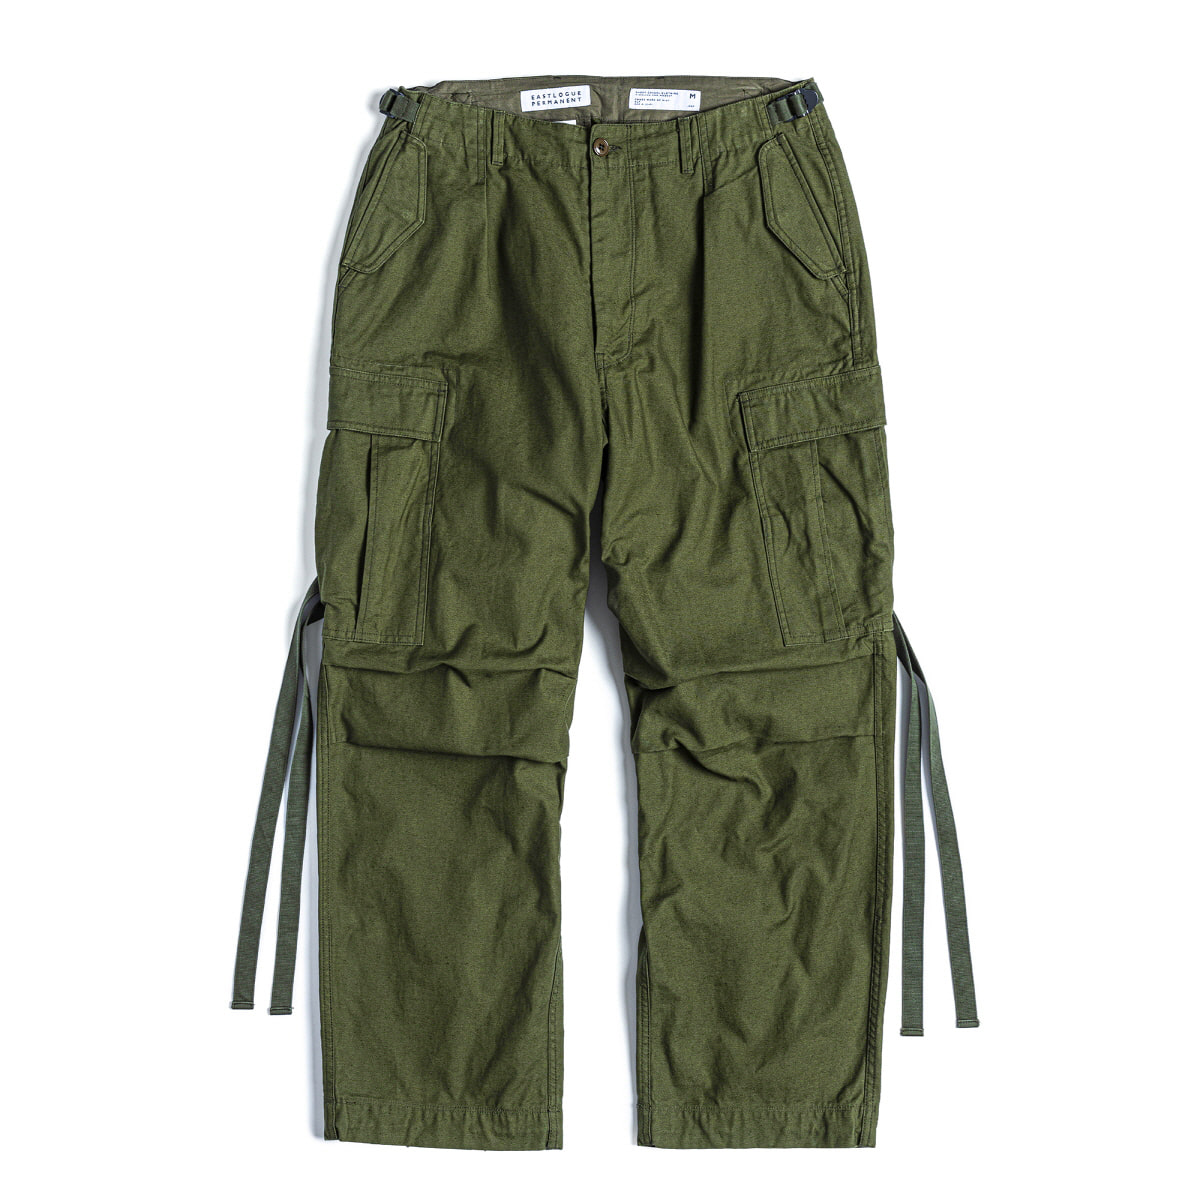 FIELD PANTS WIDE FIT - OLIVE BACK SATIN